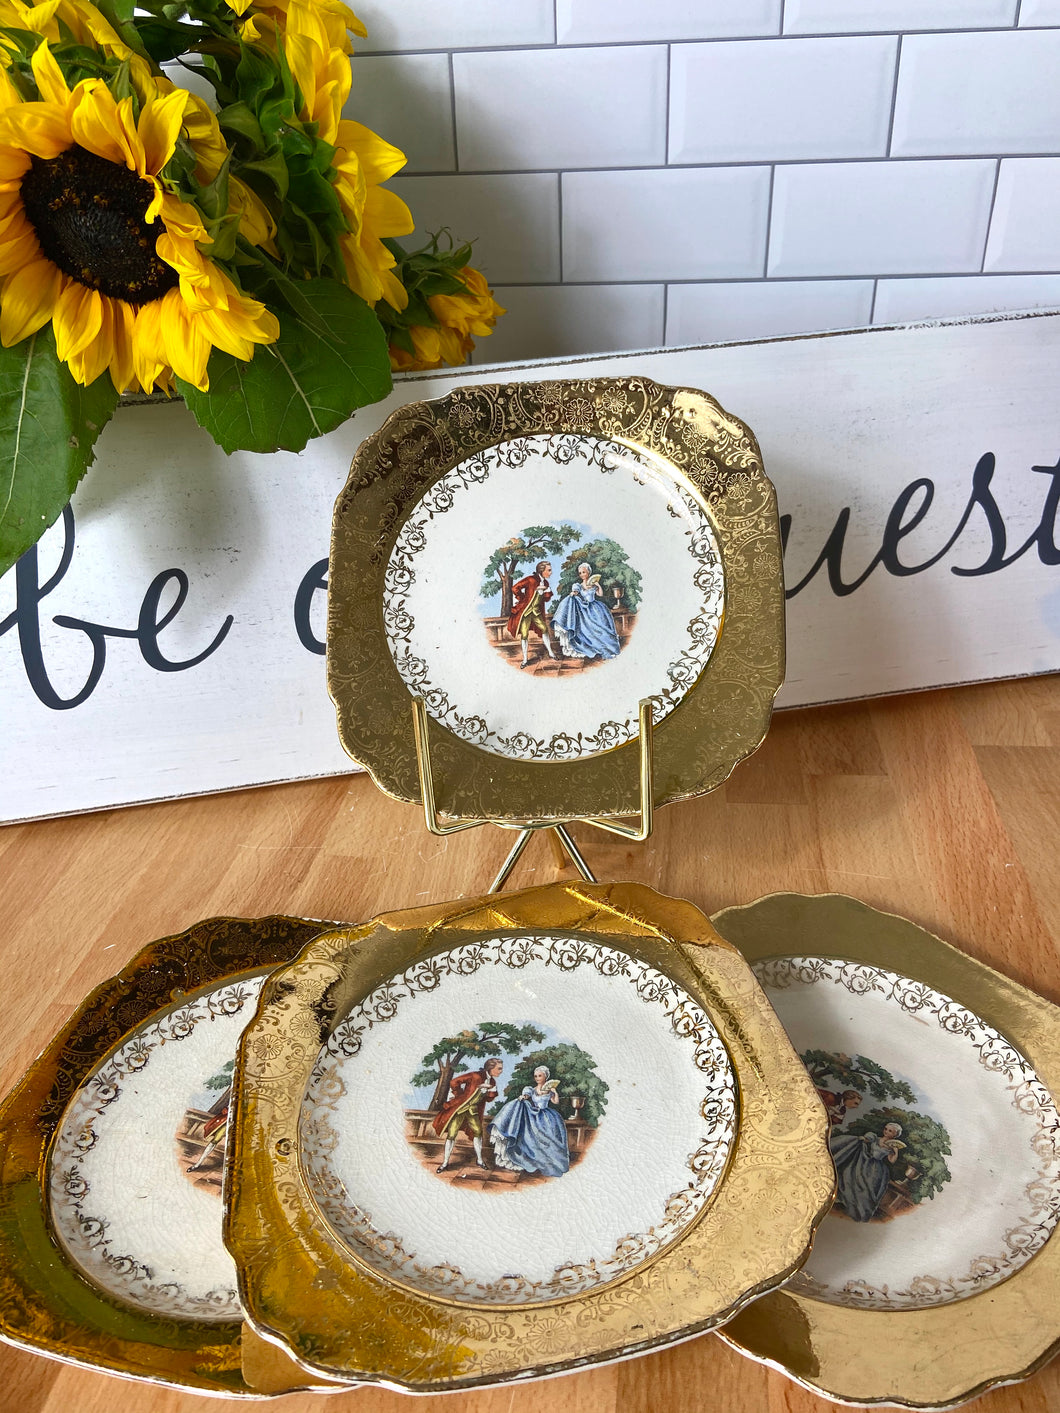 Beauty and the Beast Party Decoration: Set of Prince & Princess Plates